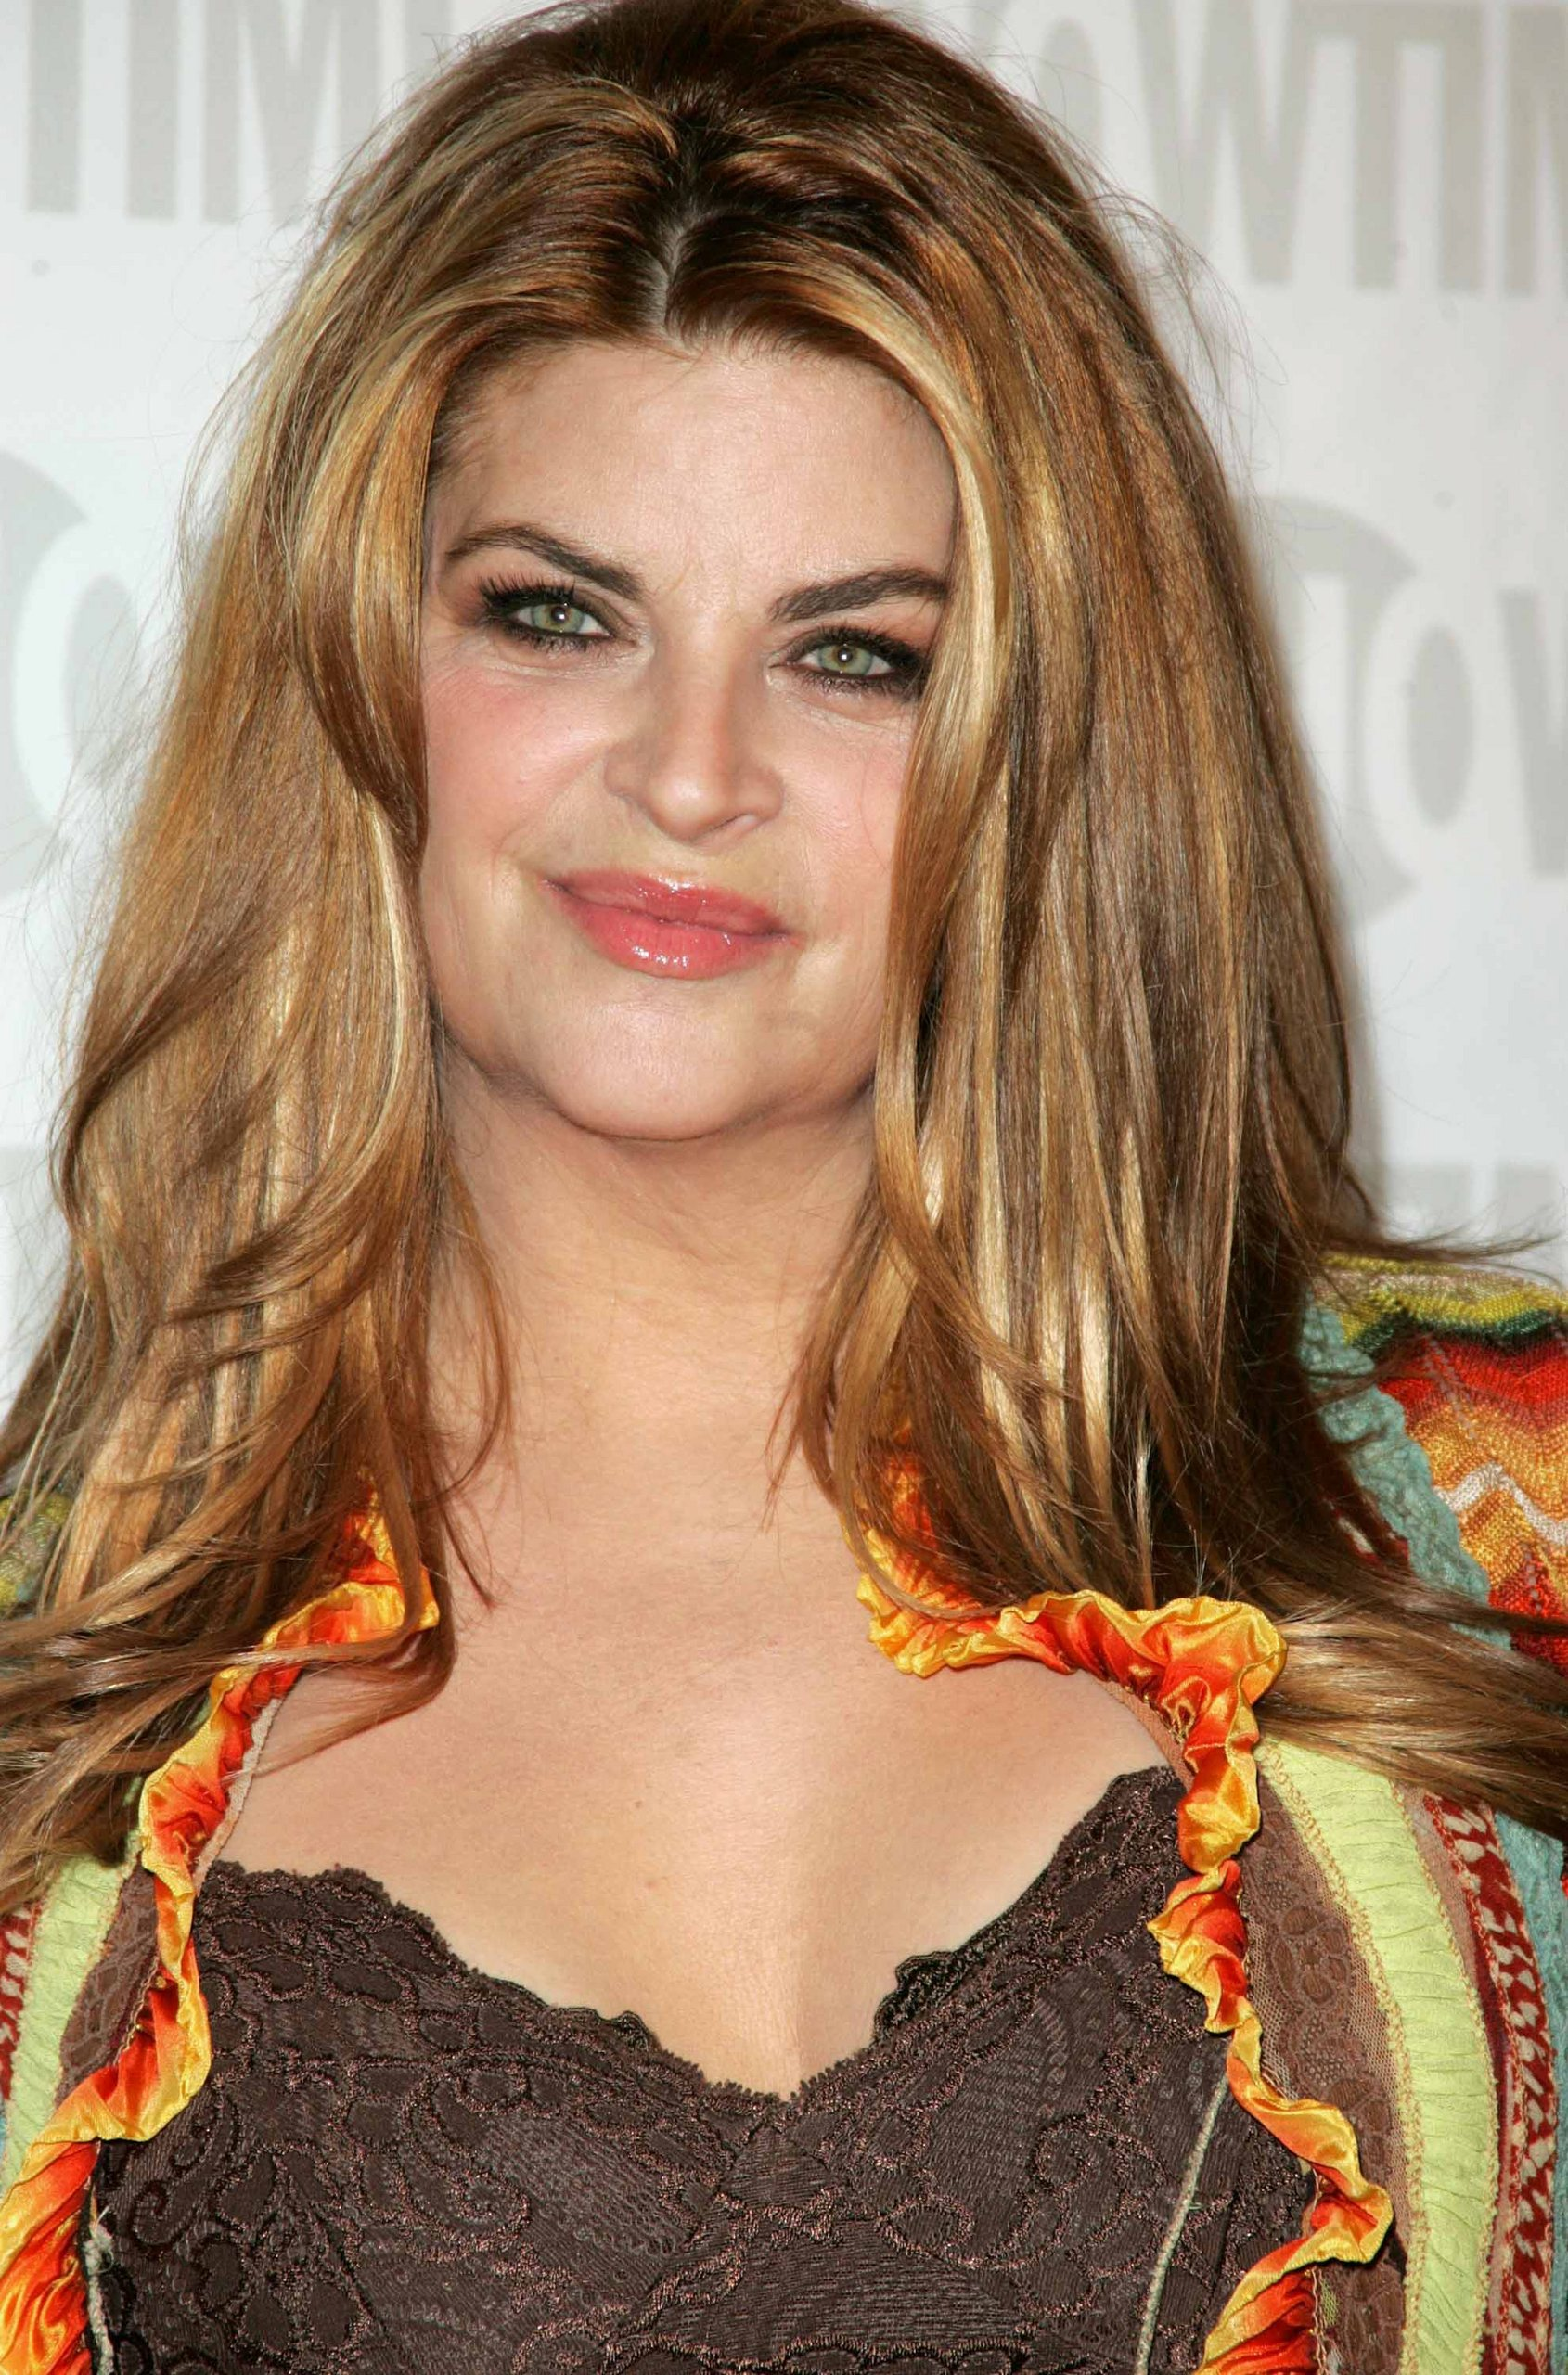 Celebrity Big Brothers Kirstie Alley plans to have sex